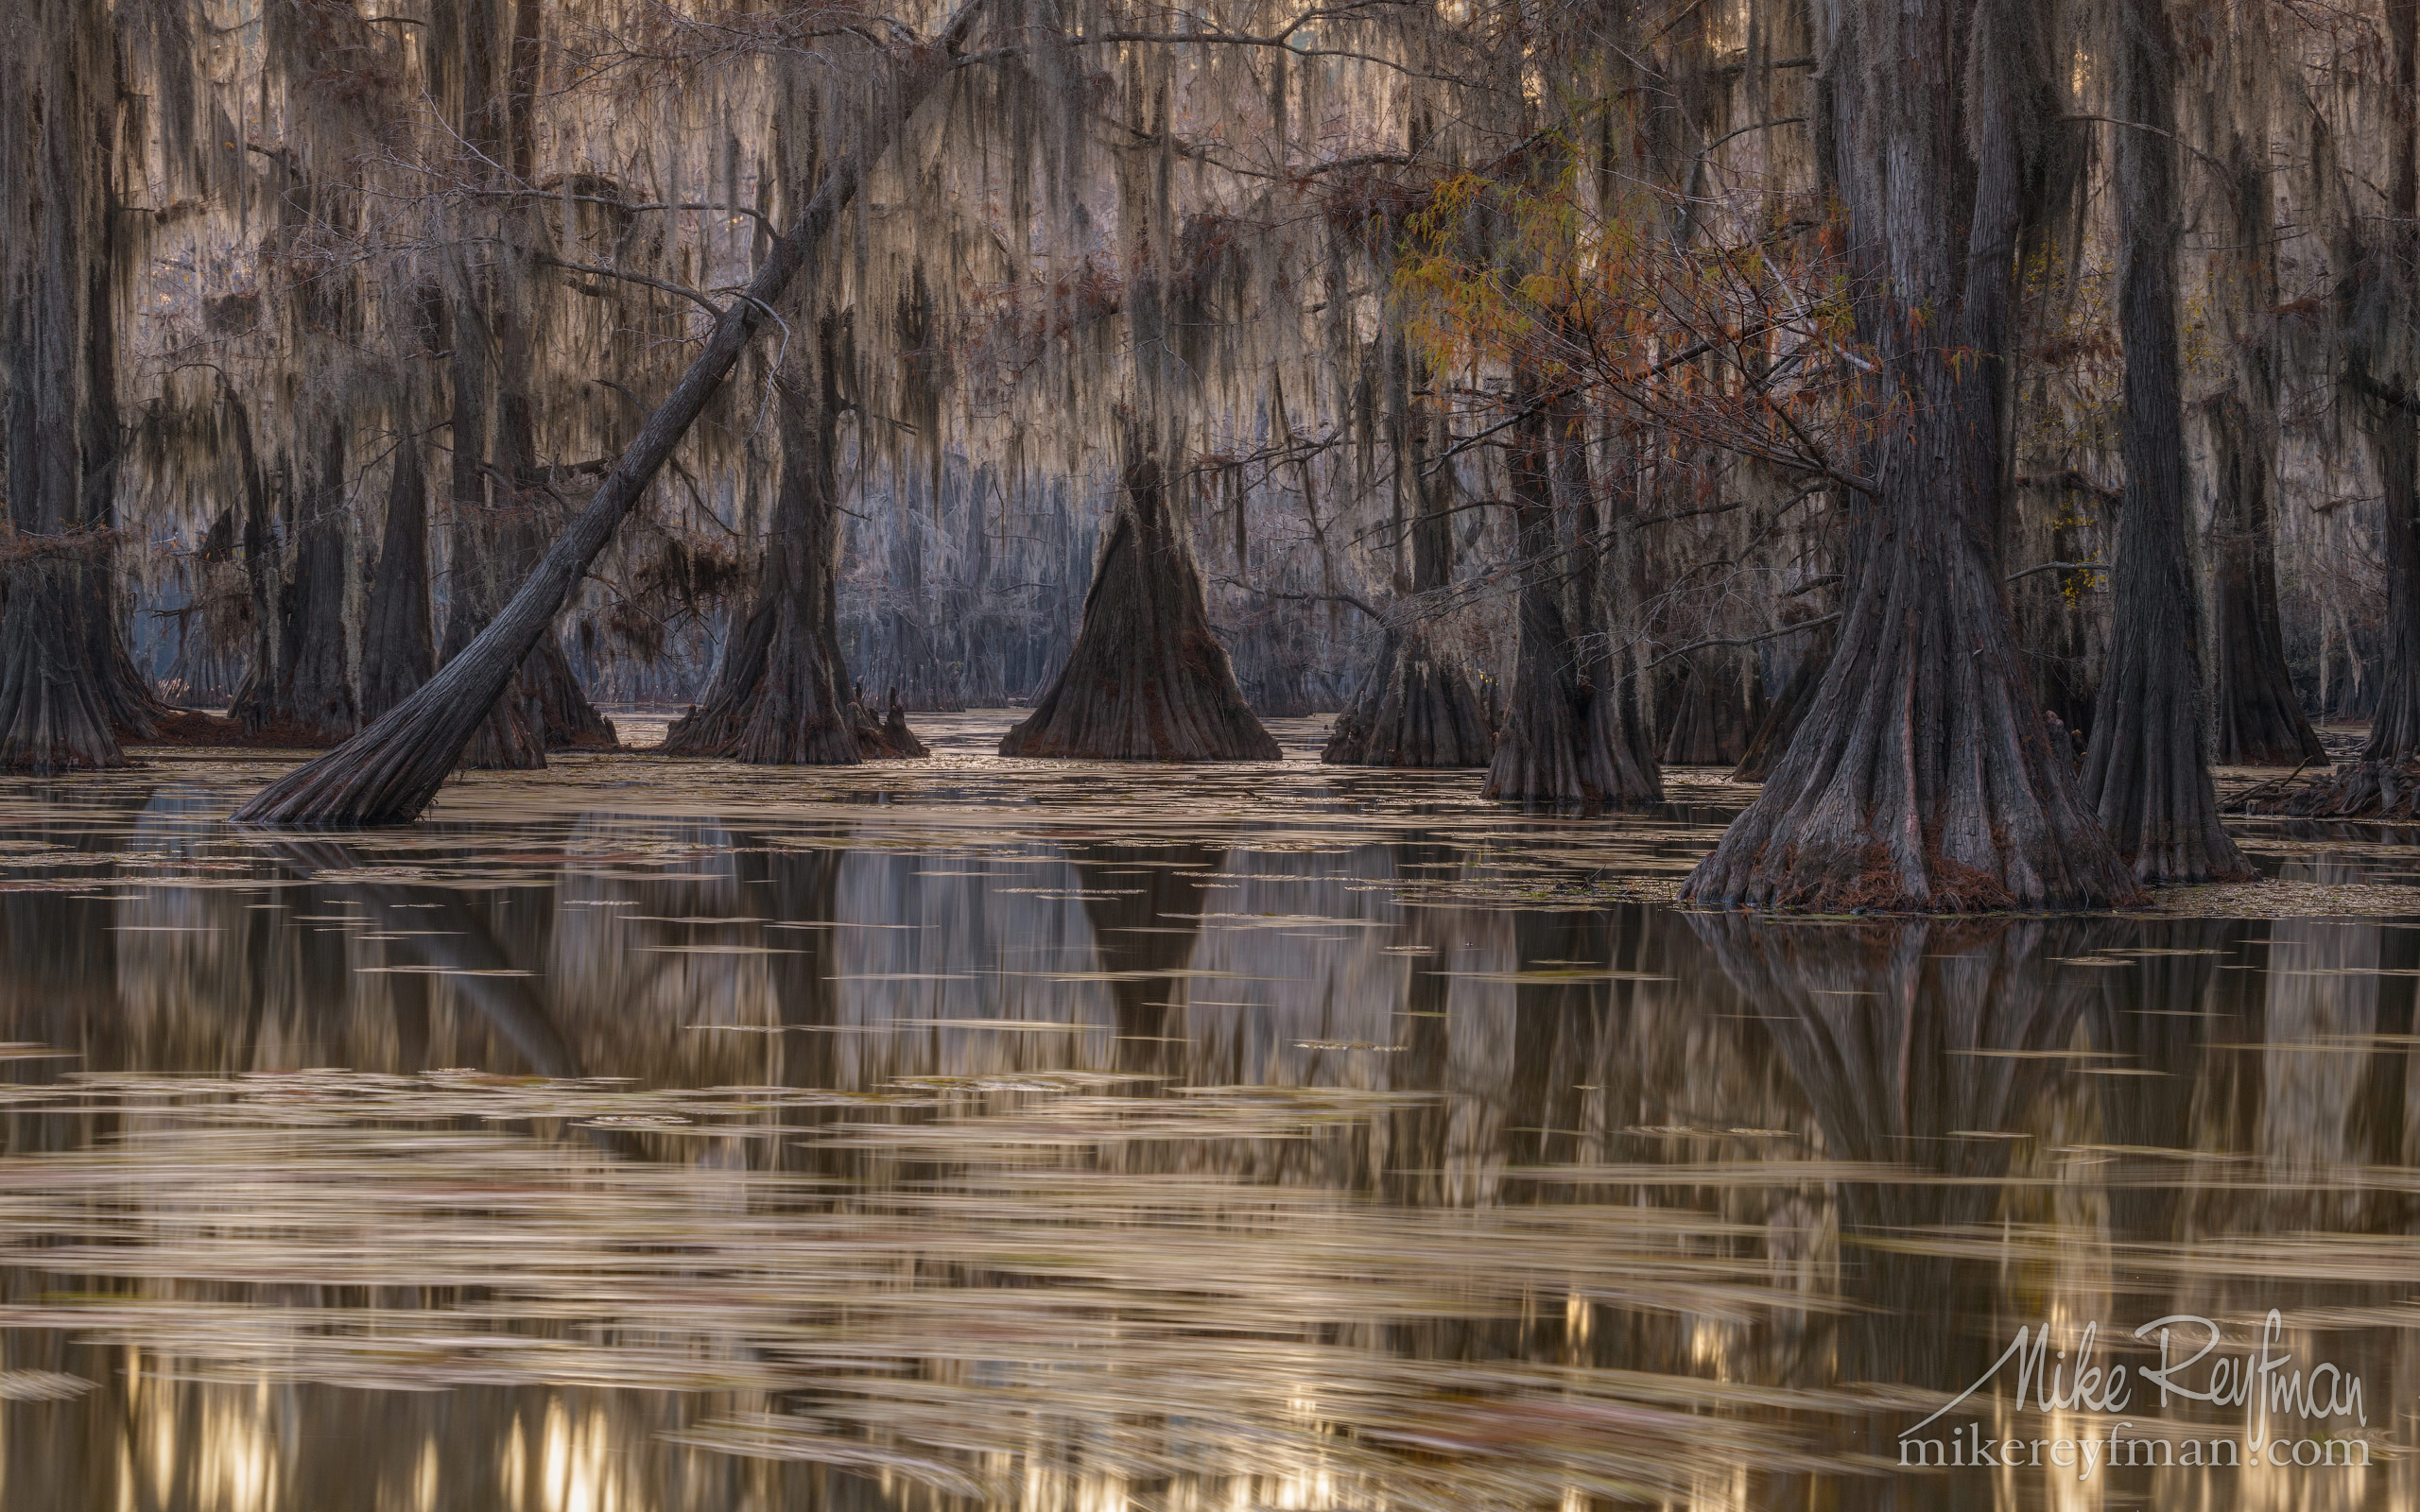 Bald Cypress trees in the swamp. Caddo Lake, Texas, US 011-LT1-50A3182.jpg - Bold Cypress and Tupelo Trees in the swamps of Atchafalaya River Basin. Caddo, Martin and Fousse Lakes. Texas/Louisiana, USA. - Mike Reyfman Photography